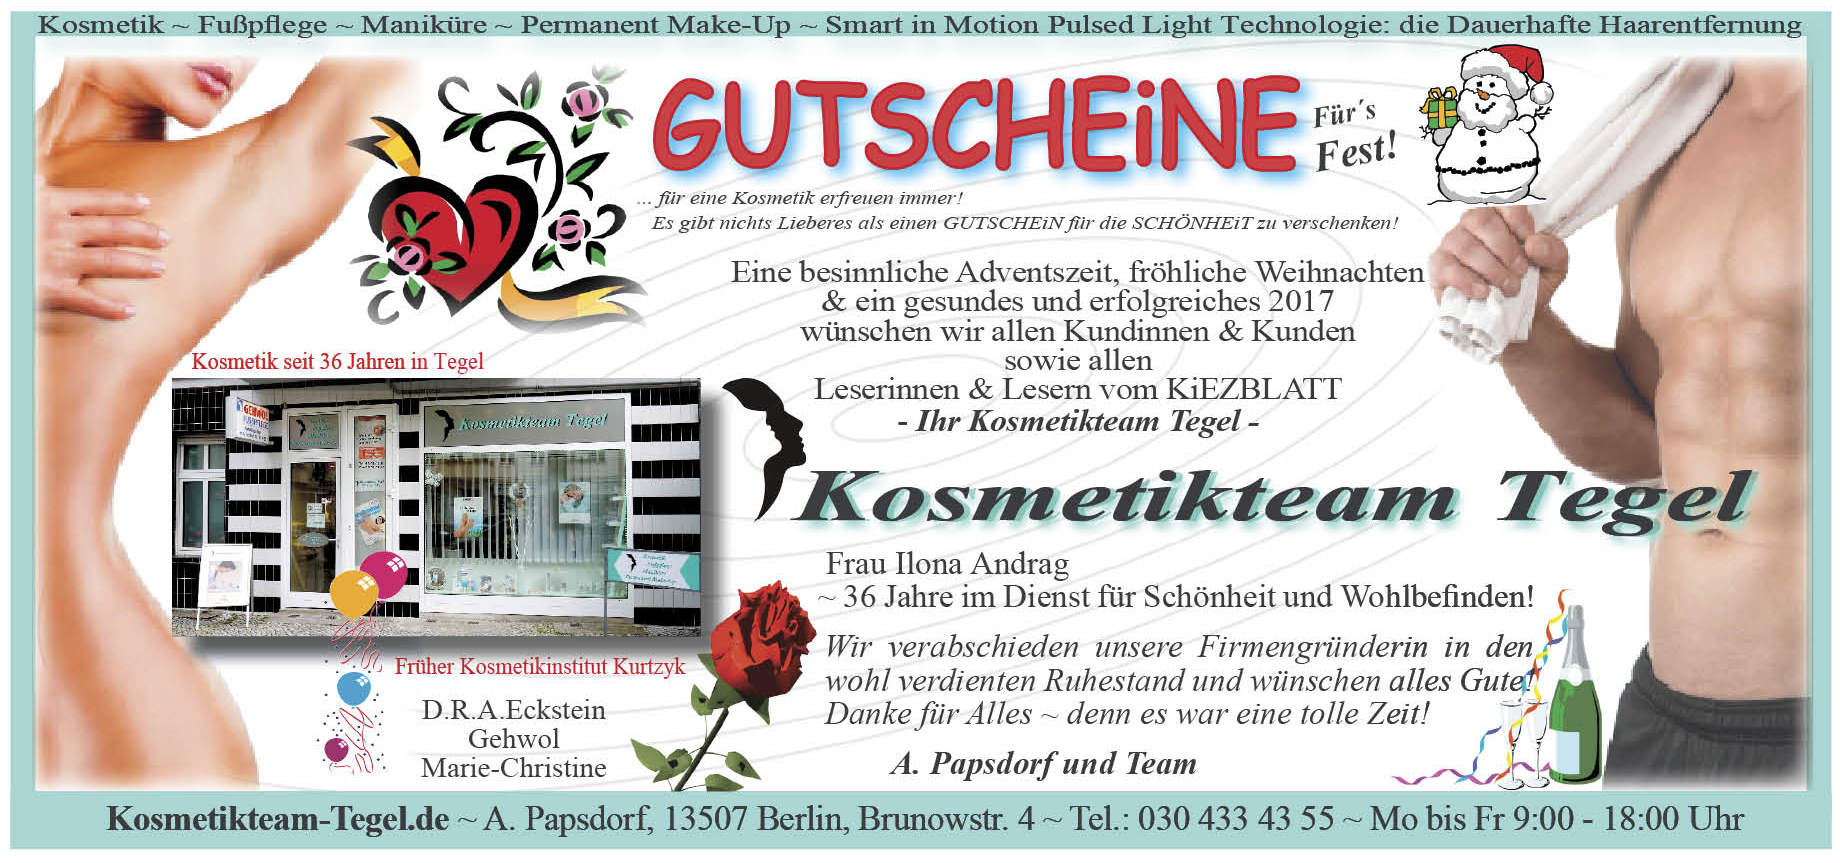 141-wp-06-kosmetikteam-tegel